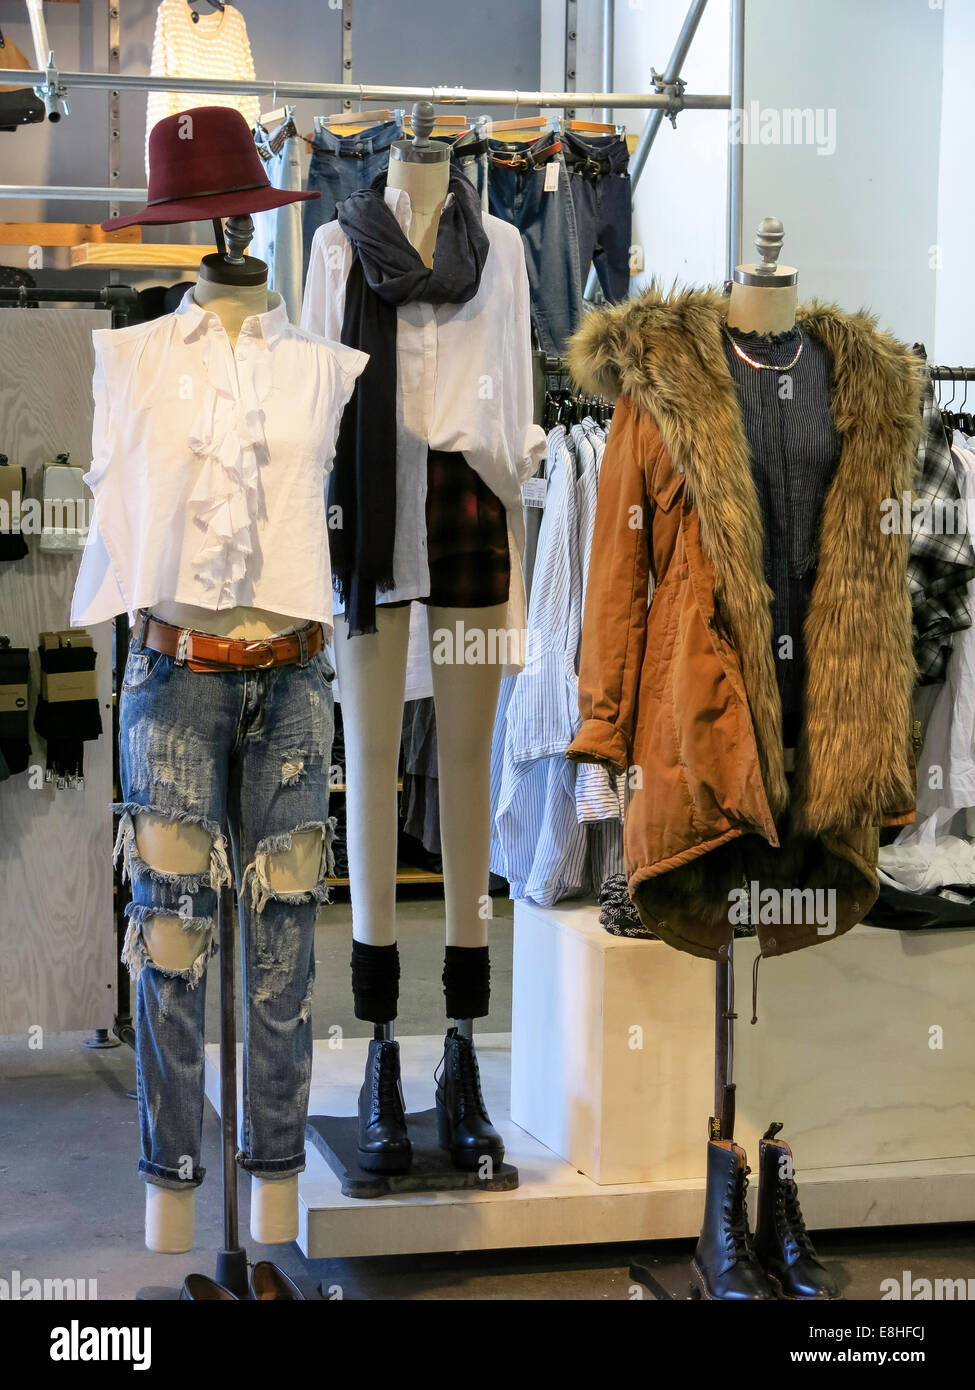 Women s Clothing Display e00787bcd